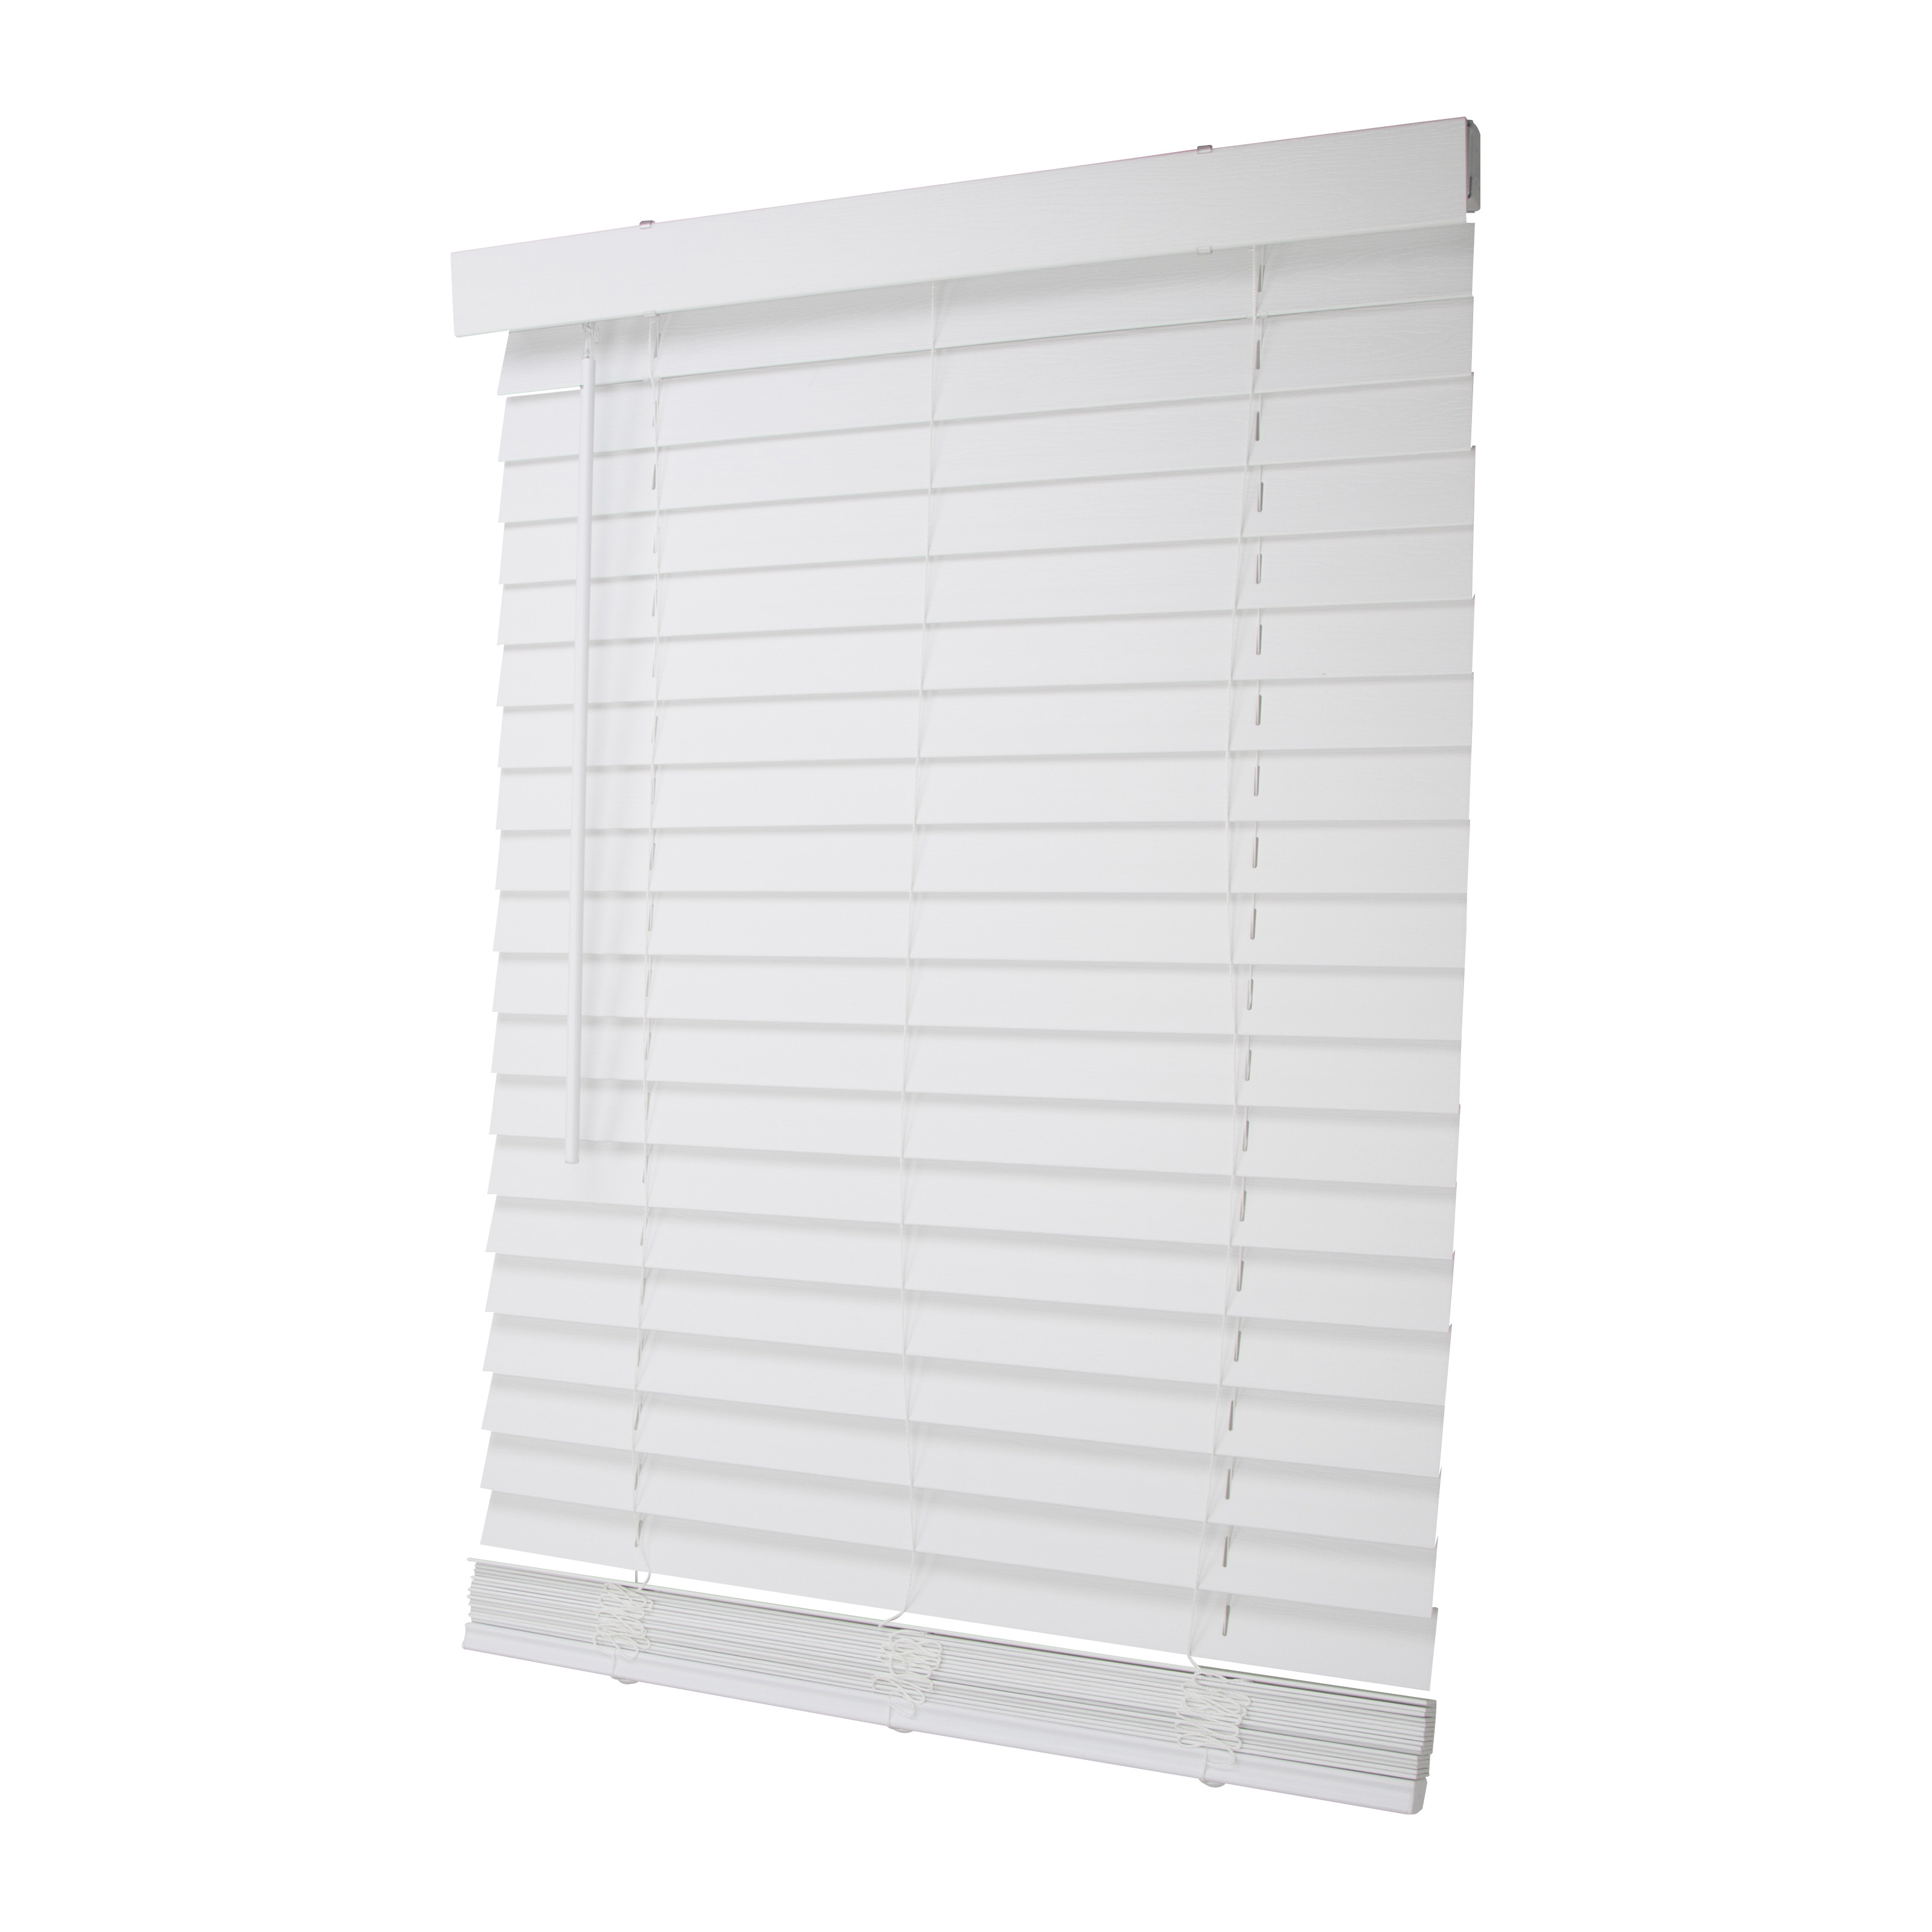 Picture of Simple Spaces FWMB-10 Cordless Mini Blind, 64 in L, 29 in W, Faux Wood, White